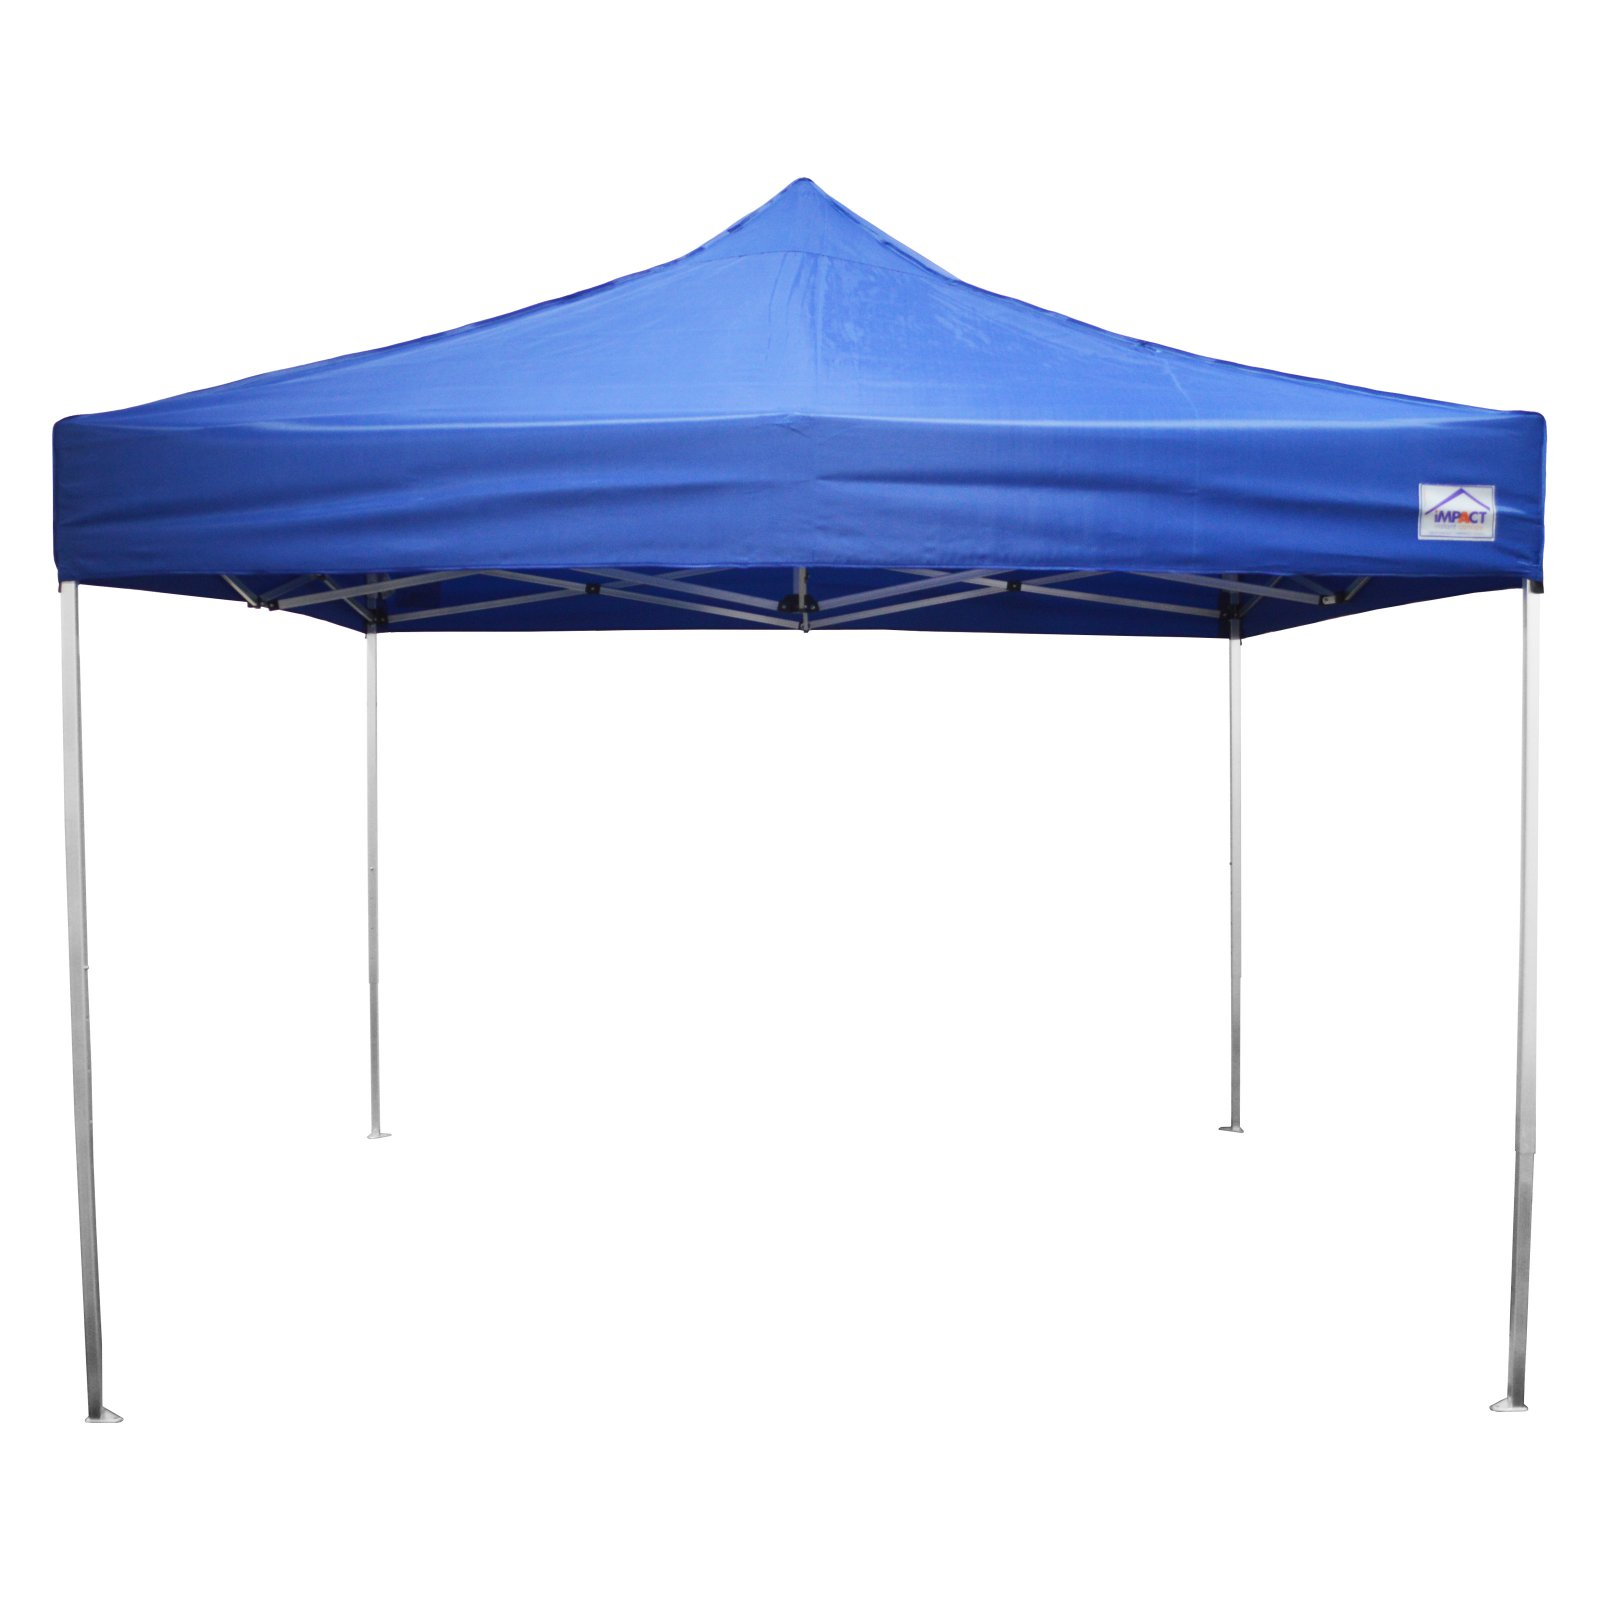 Impact Canopy 10 x 10 ft. Ultra Lite Pop Up Canopy with Roller Bag Royal Blue - 040030003